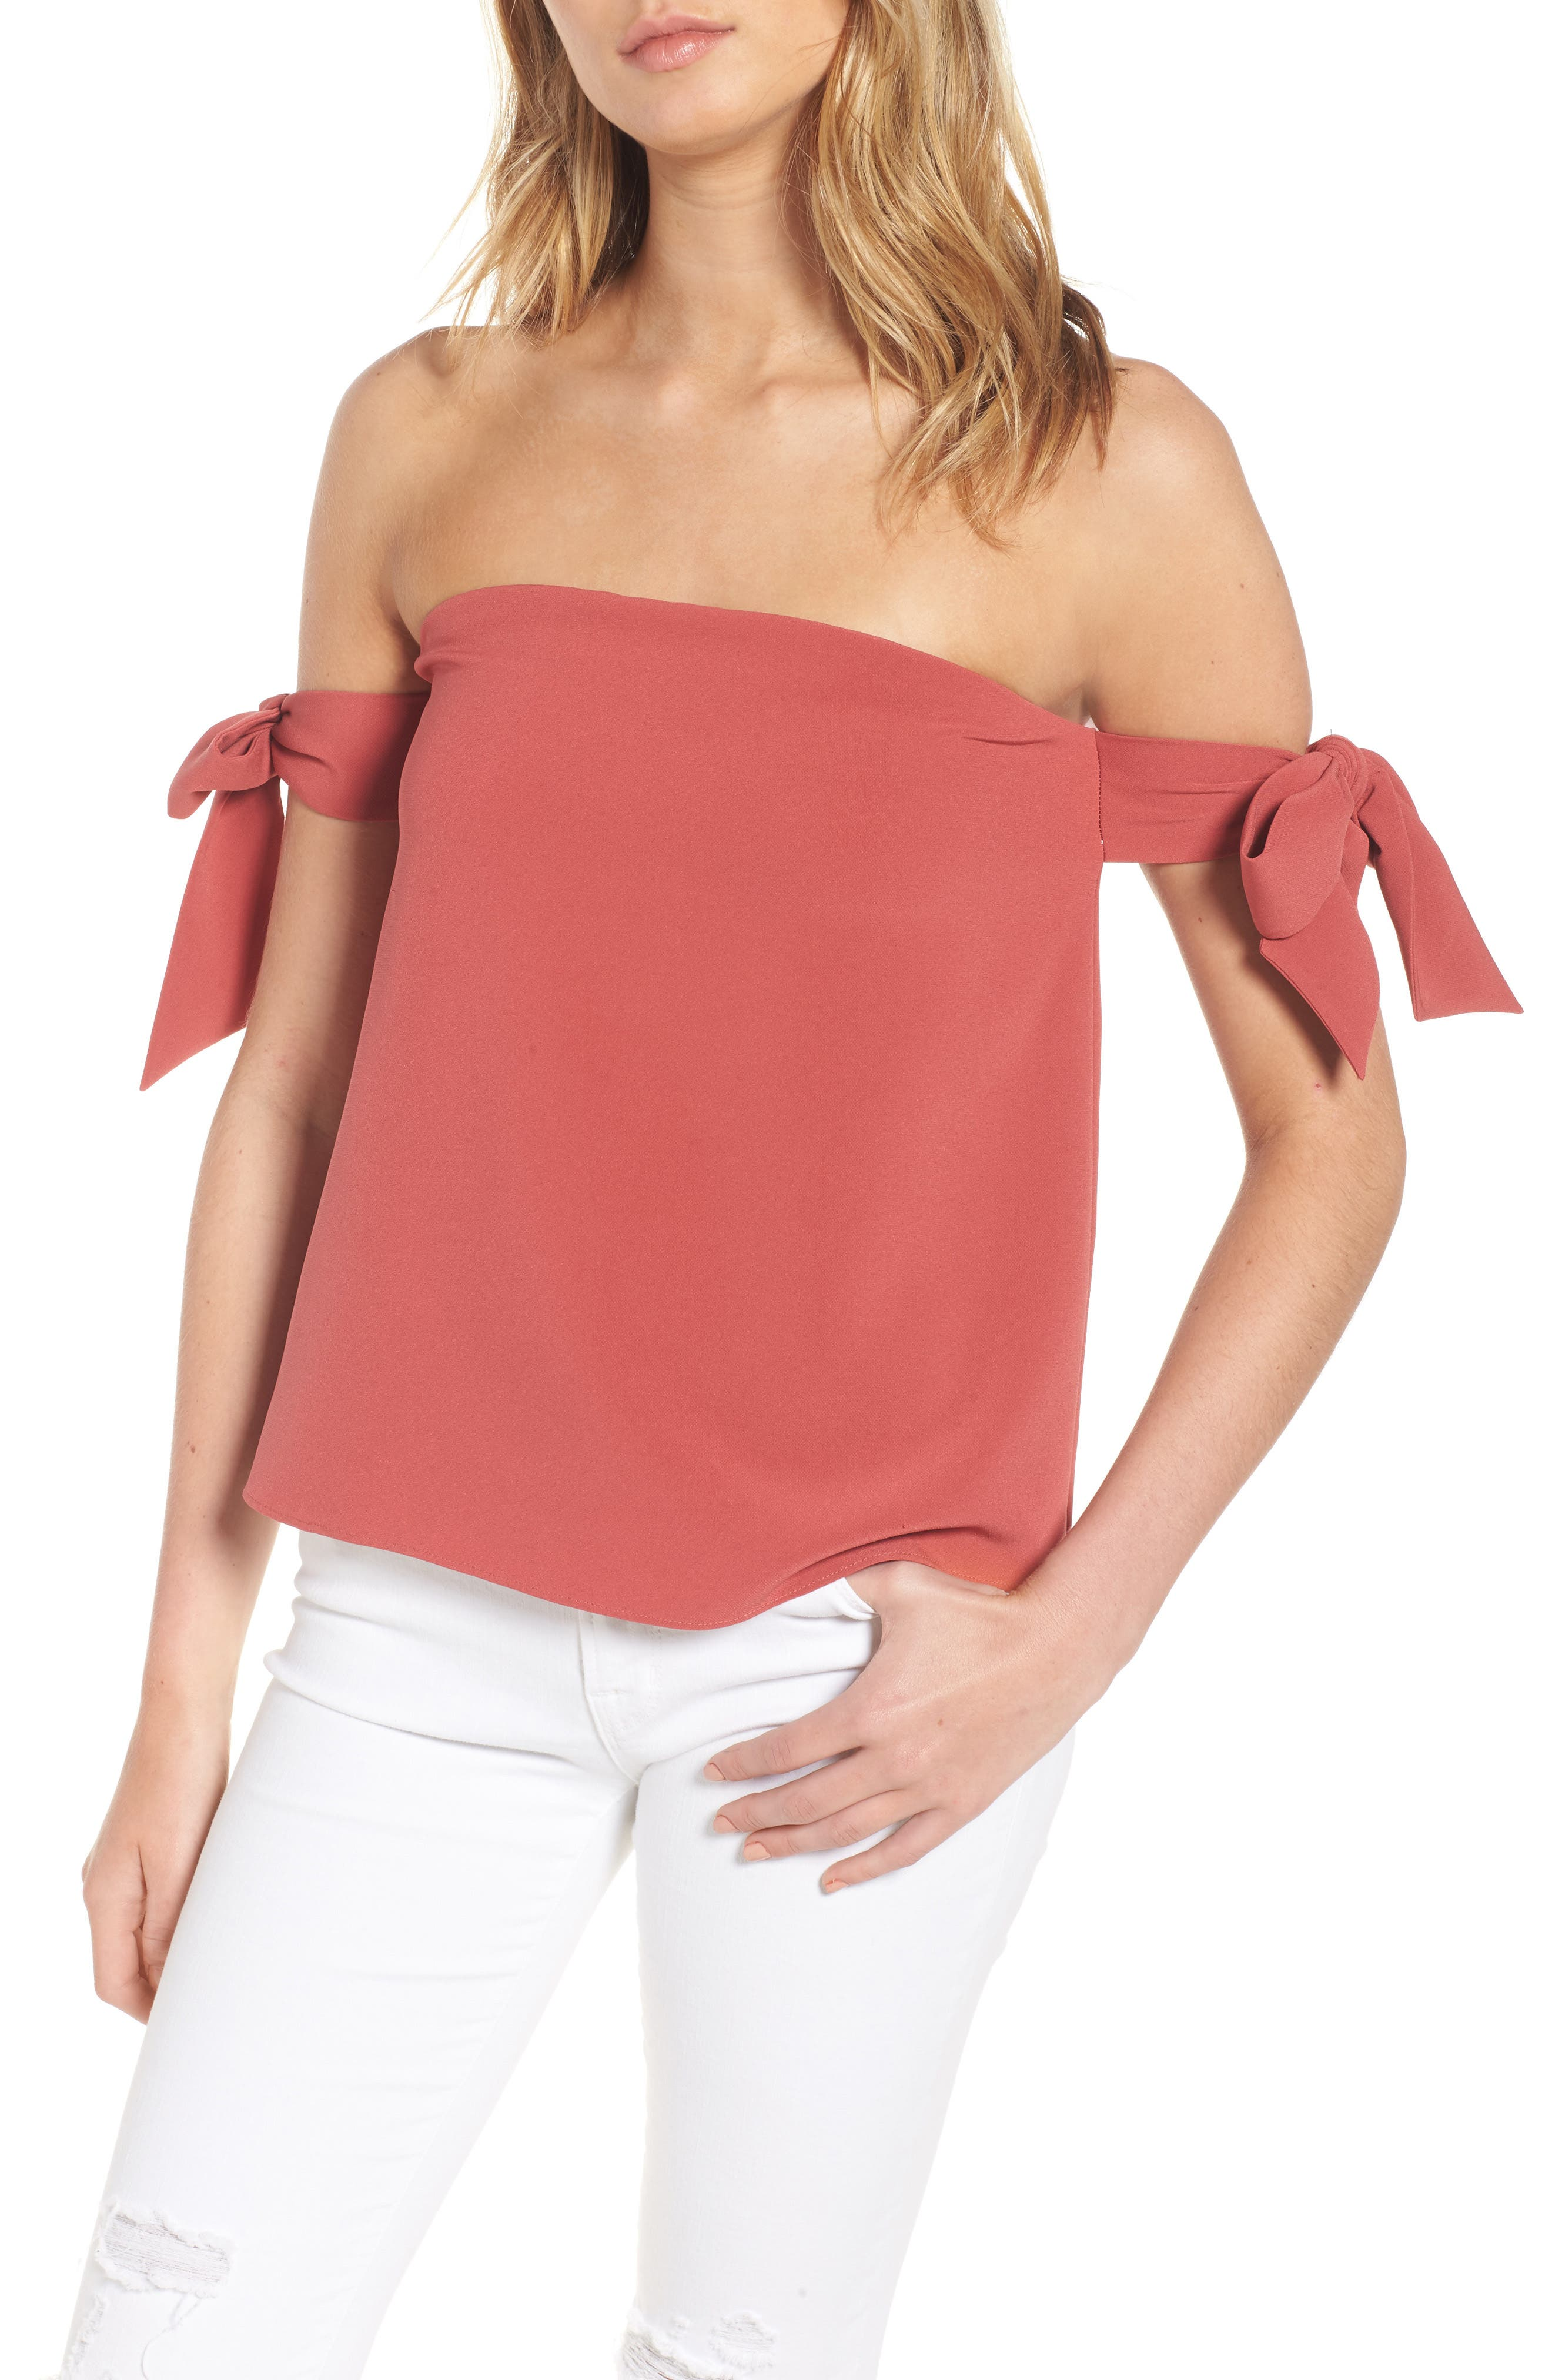 Main Image - cooper & ella Lova Bow Off the Shoulder Top